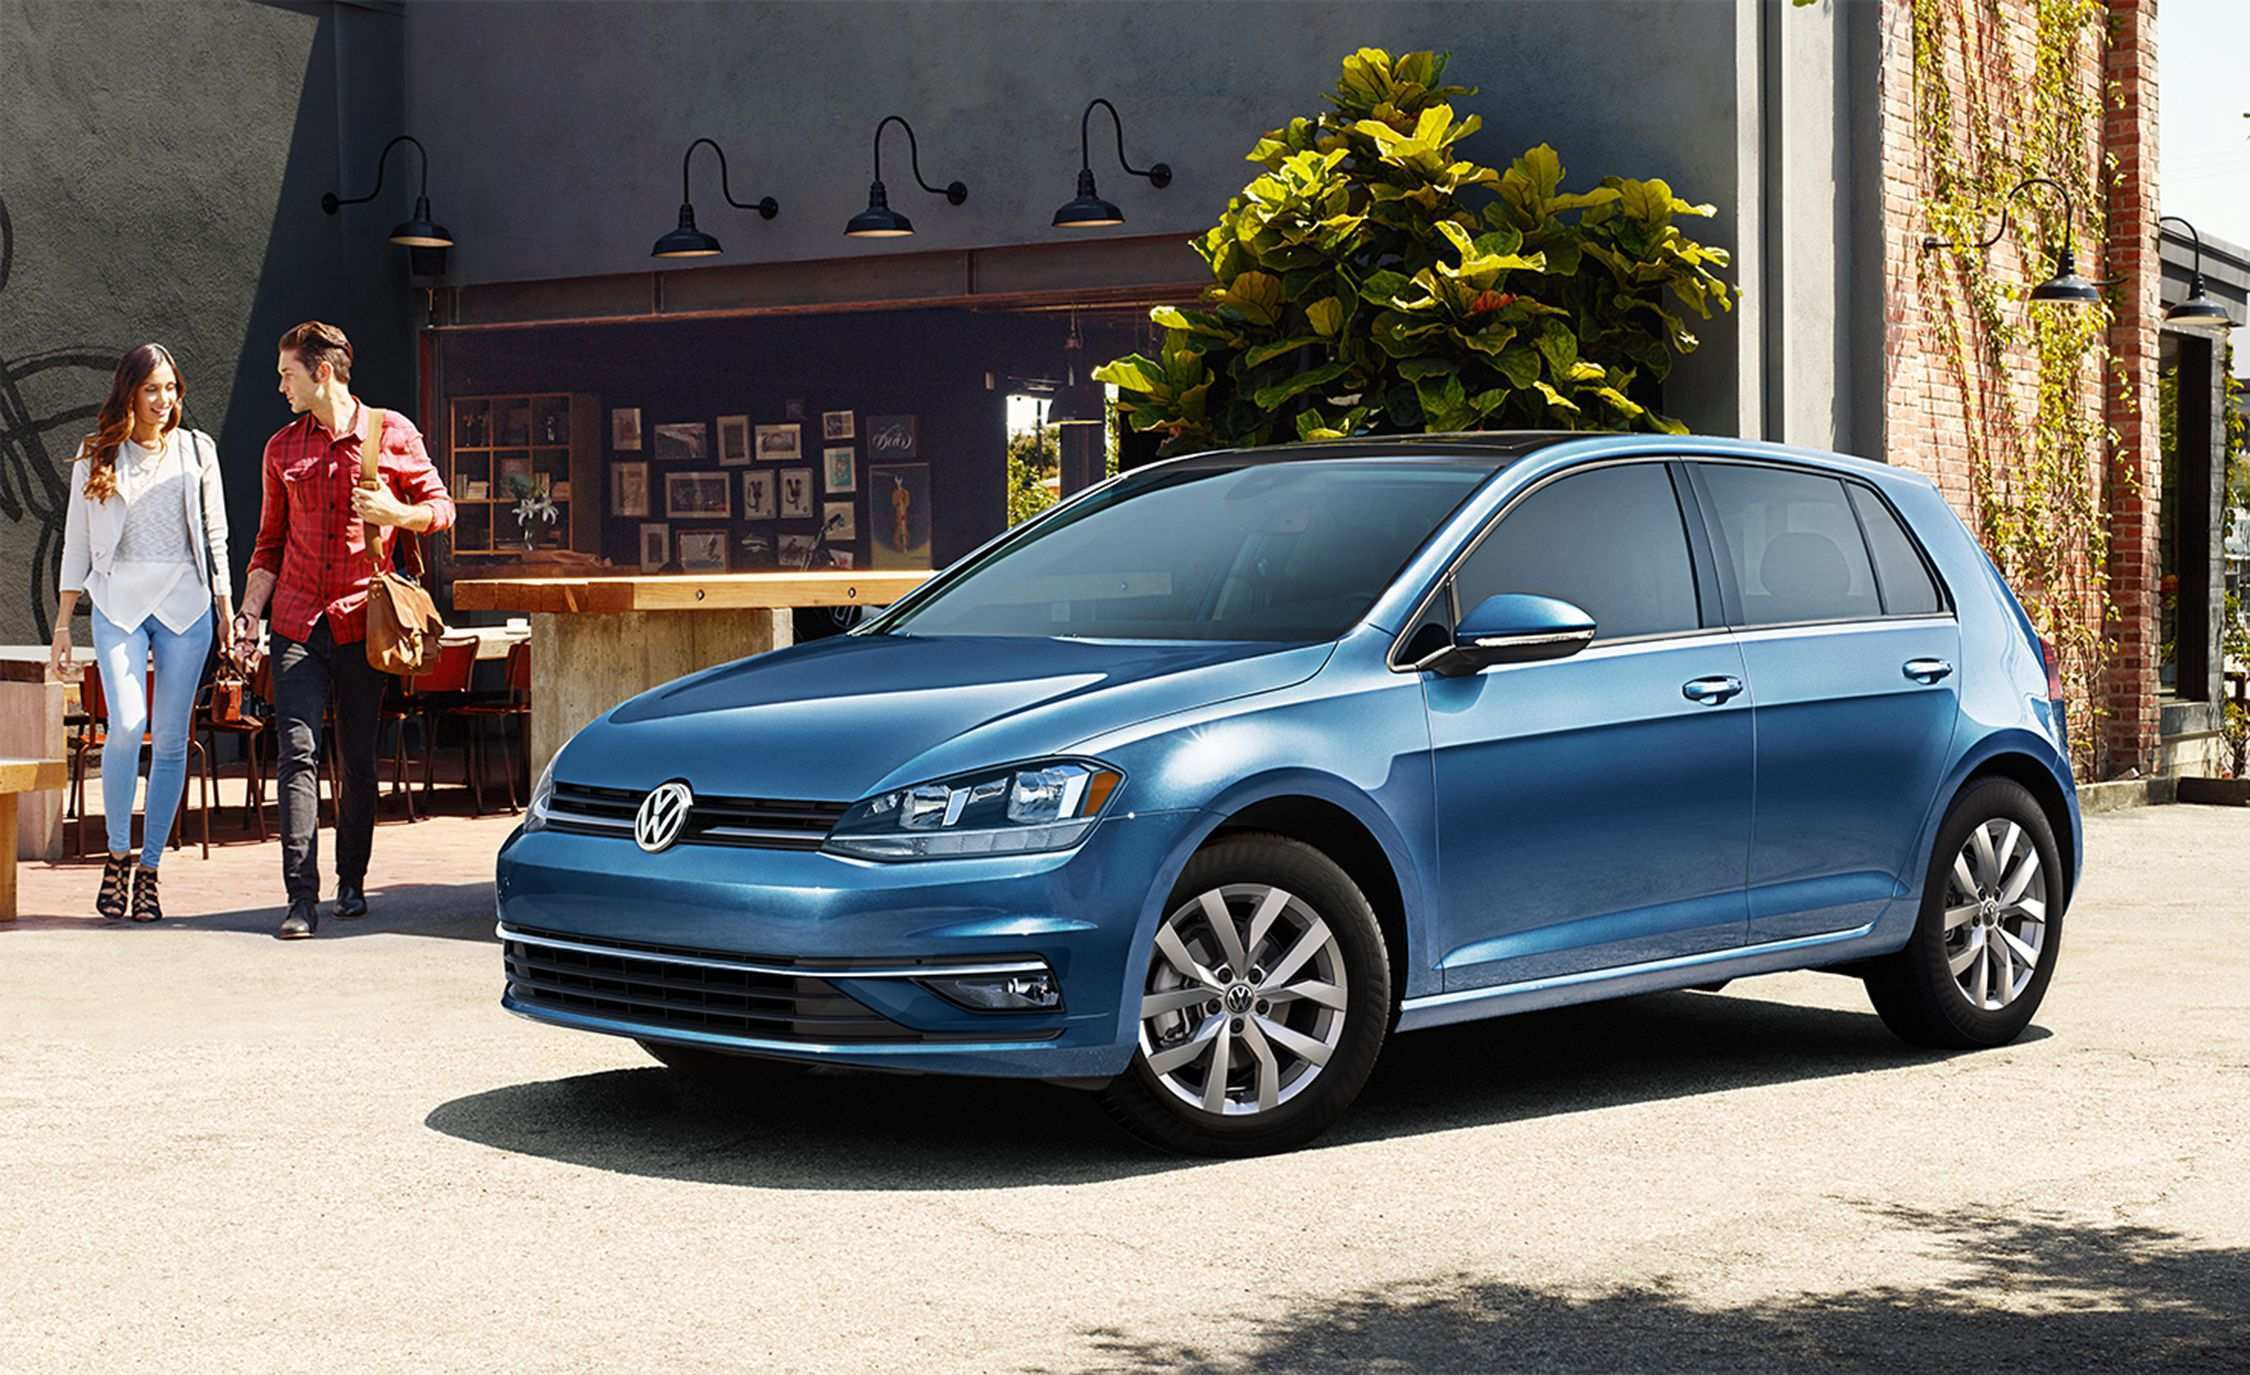 52 Best Review Golf Vw 2019 Price by Golf Vw 2019